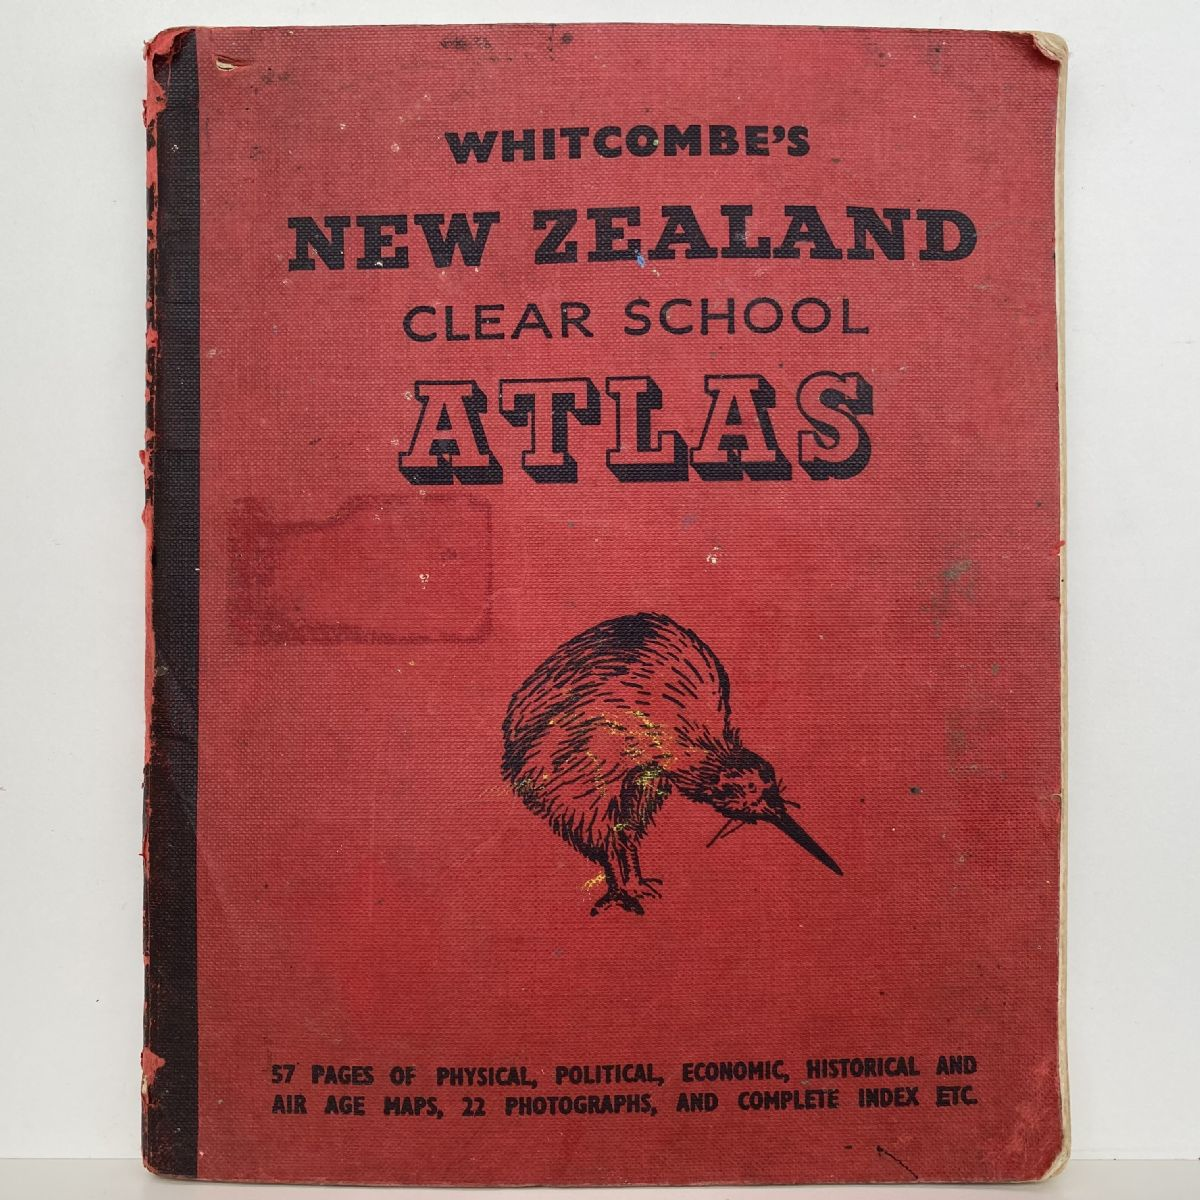 Whitcombe's New Zealand Clear School Atlas